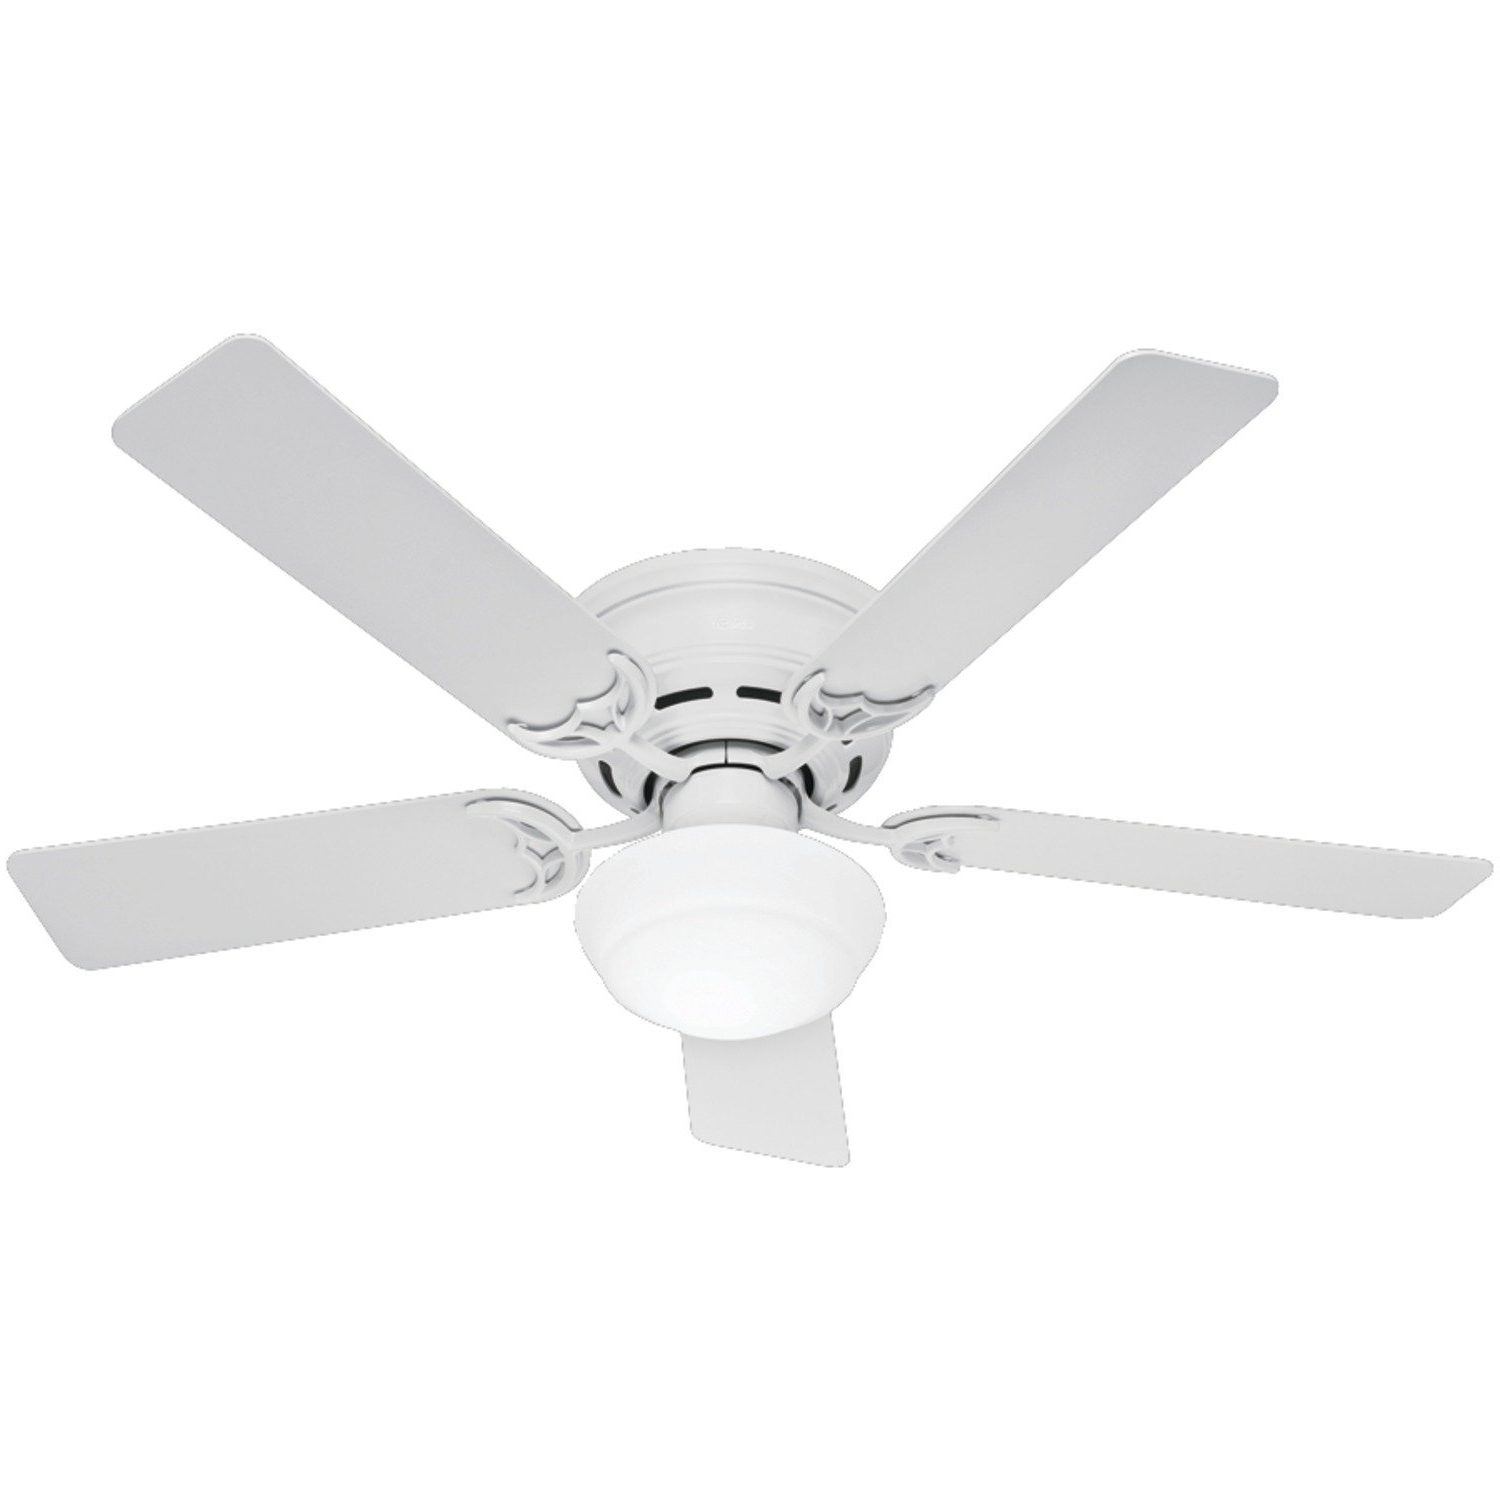 2018 Hunter Outdoor Ceiling Fans With White Lights Inside The Multifunction Hugger Ceiling Fans With Light (View 14 of 20)